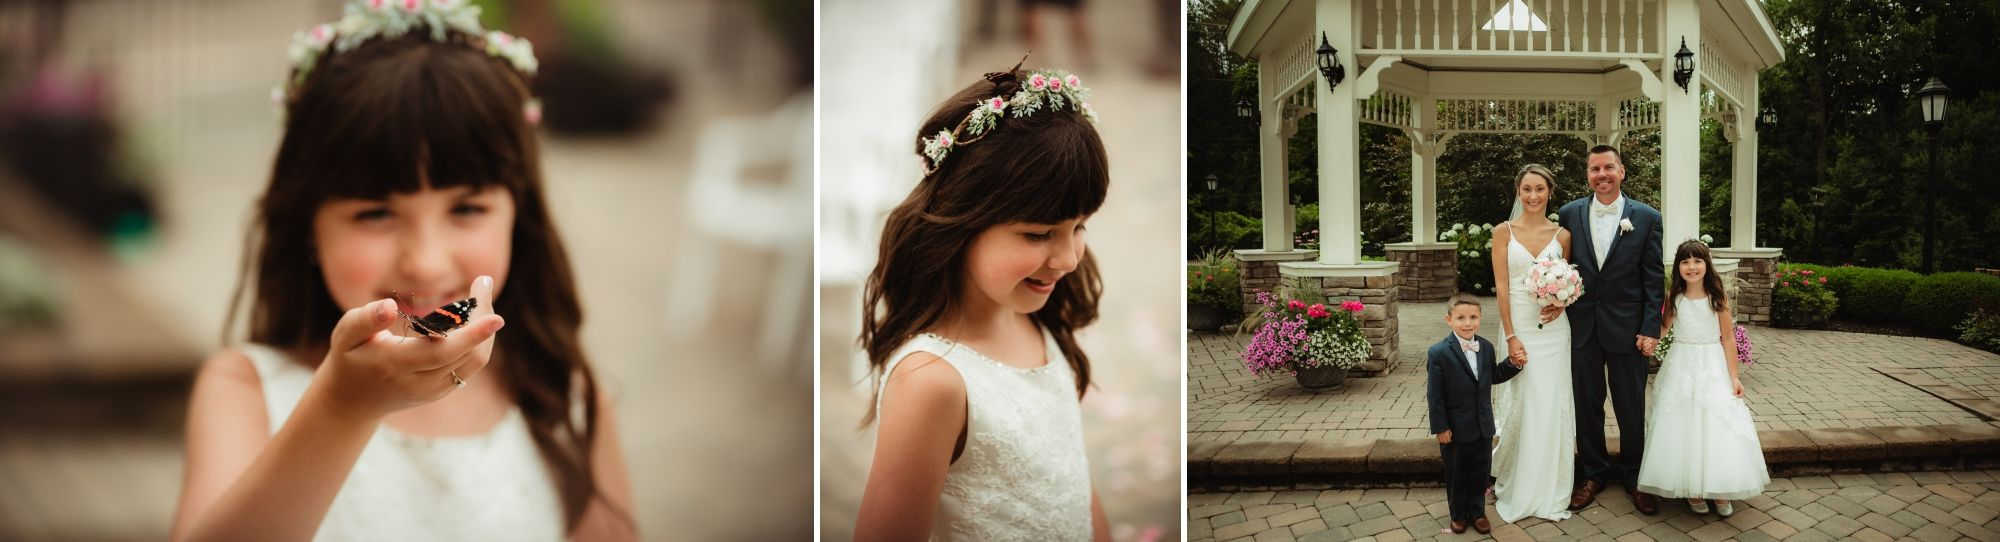 Photos of the flower girl with butterflies and the bride and groom with their two children.